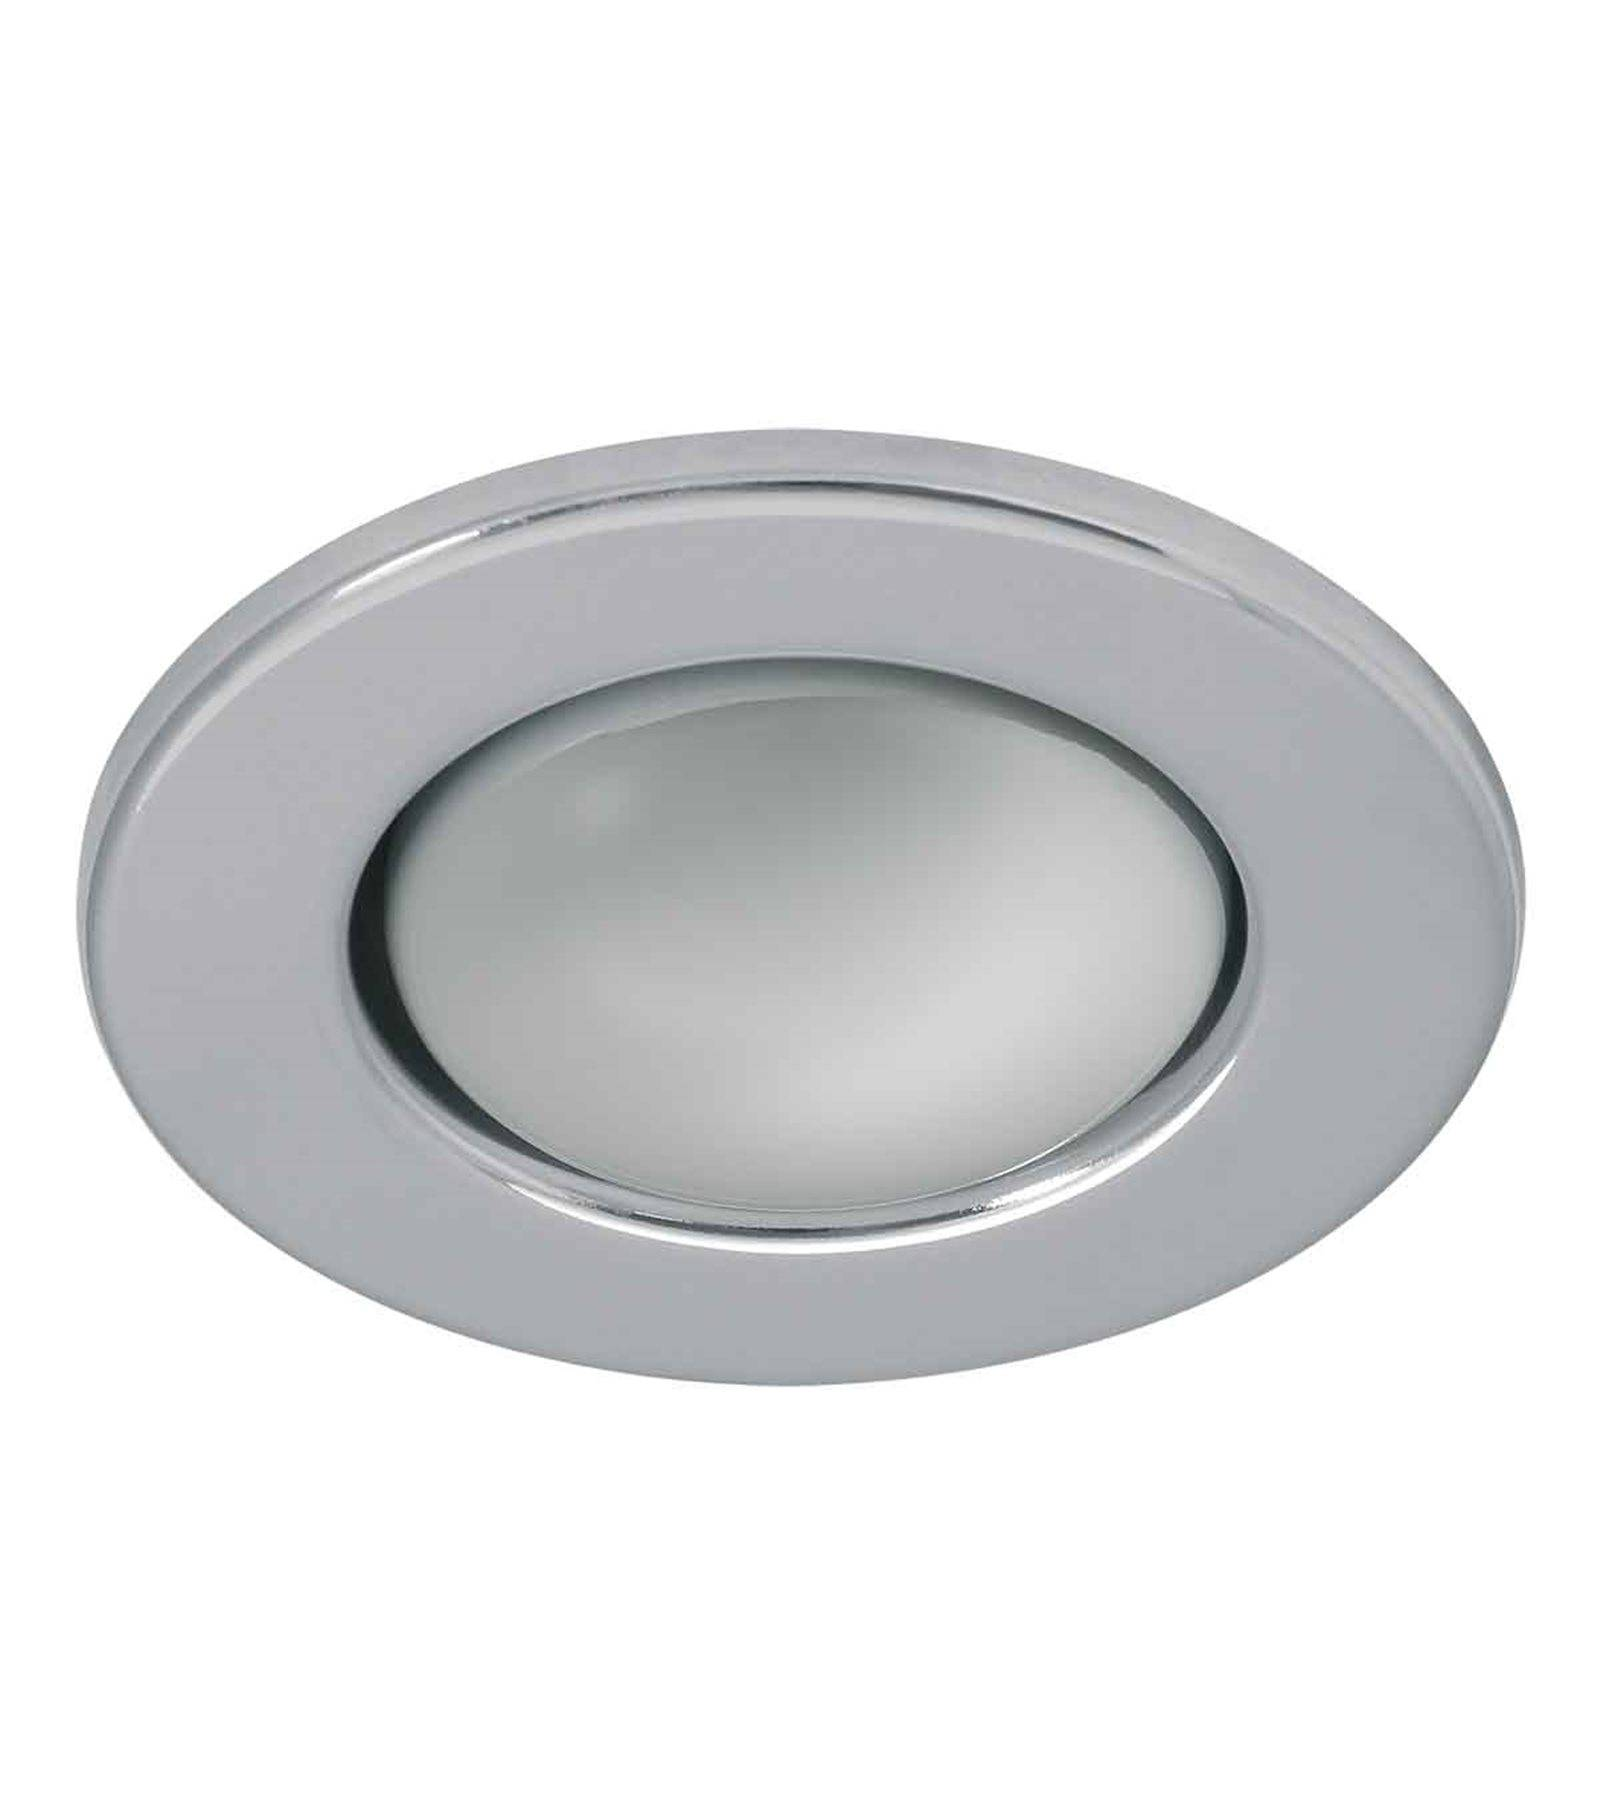 Spot encastrable plafonnier rago chrome rond e14 ip20 for Spot led interieur encastrable